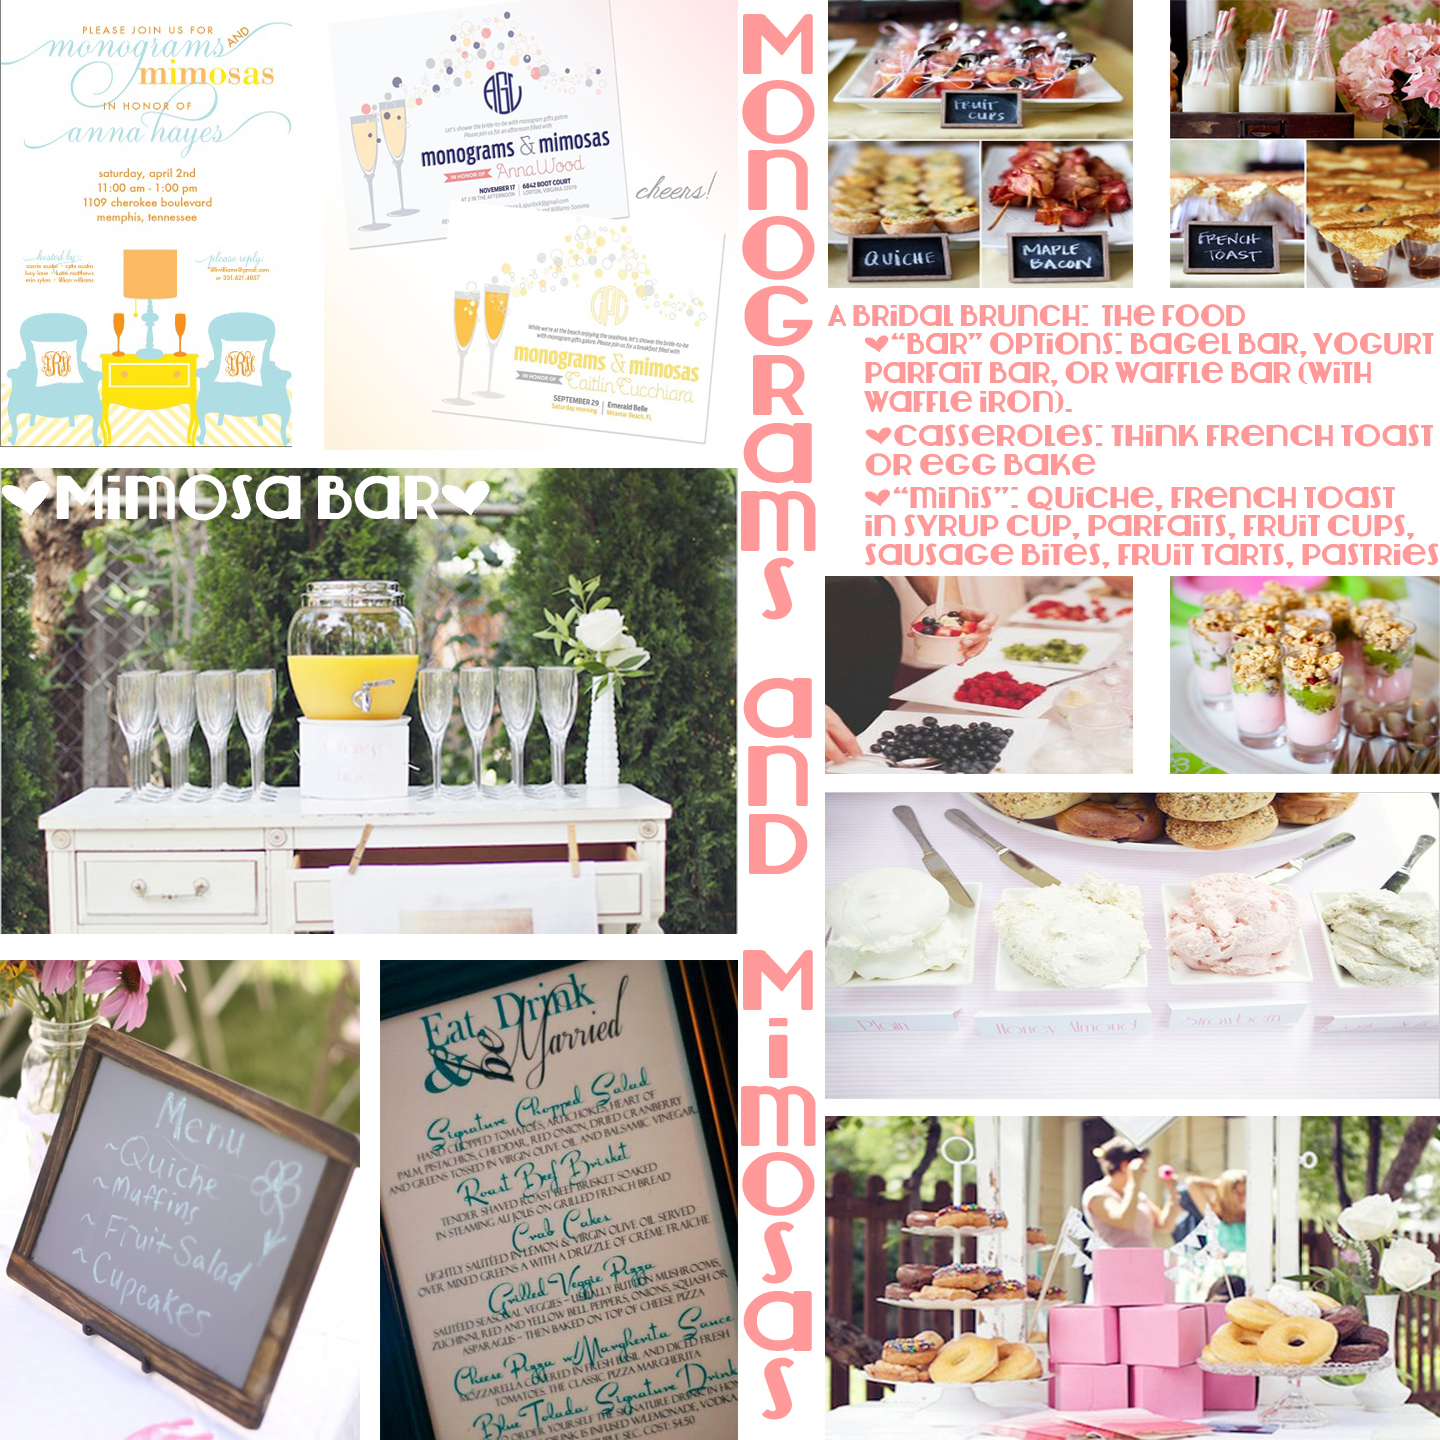 planning a bridal shower why not host a monograms and mimosas bridal shower so